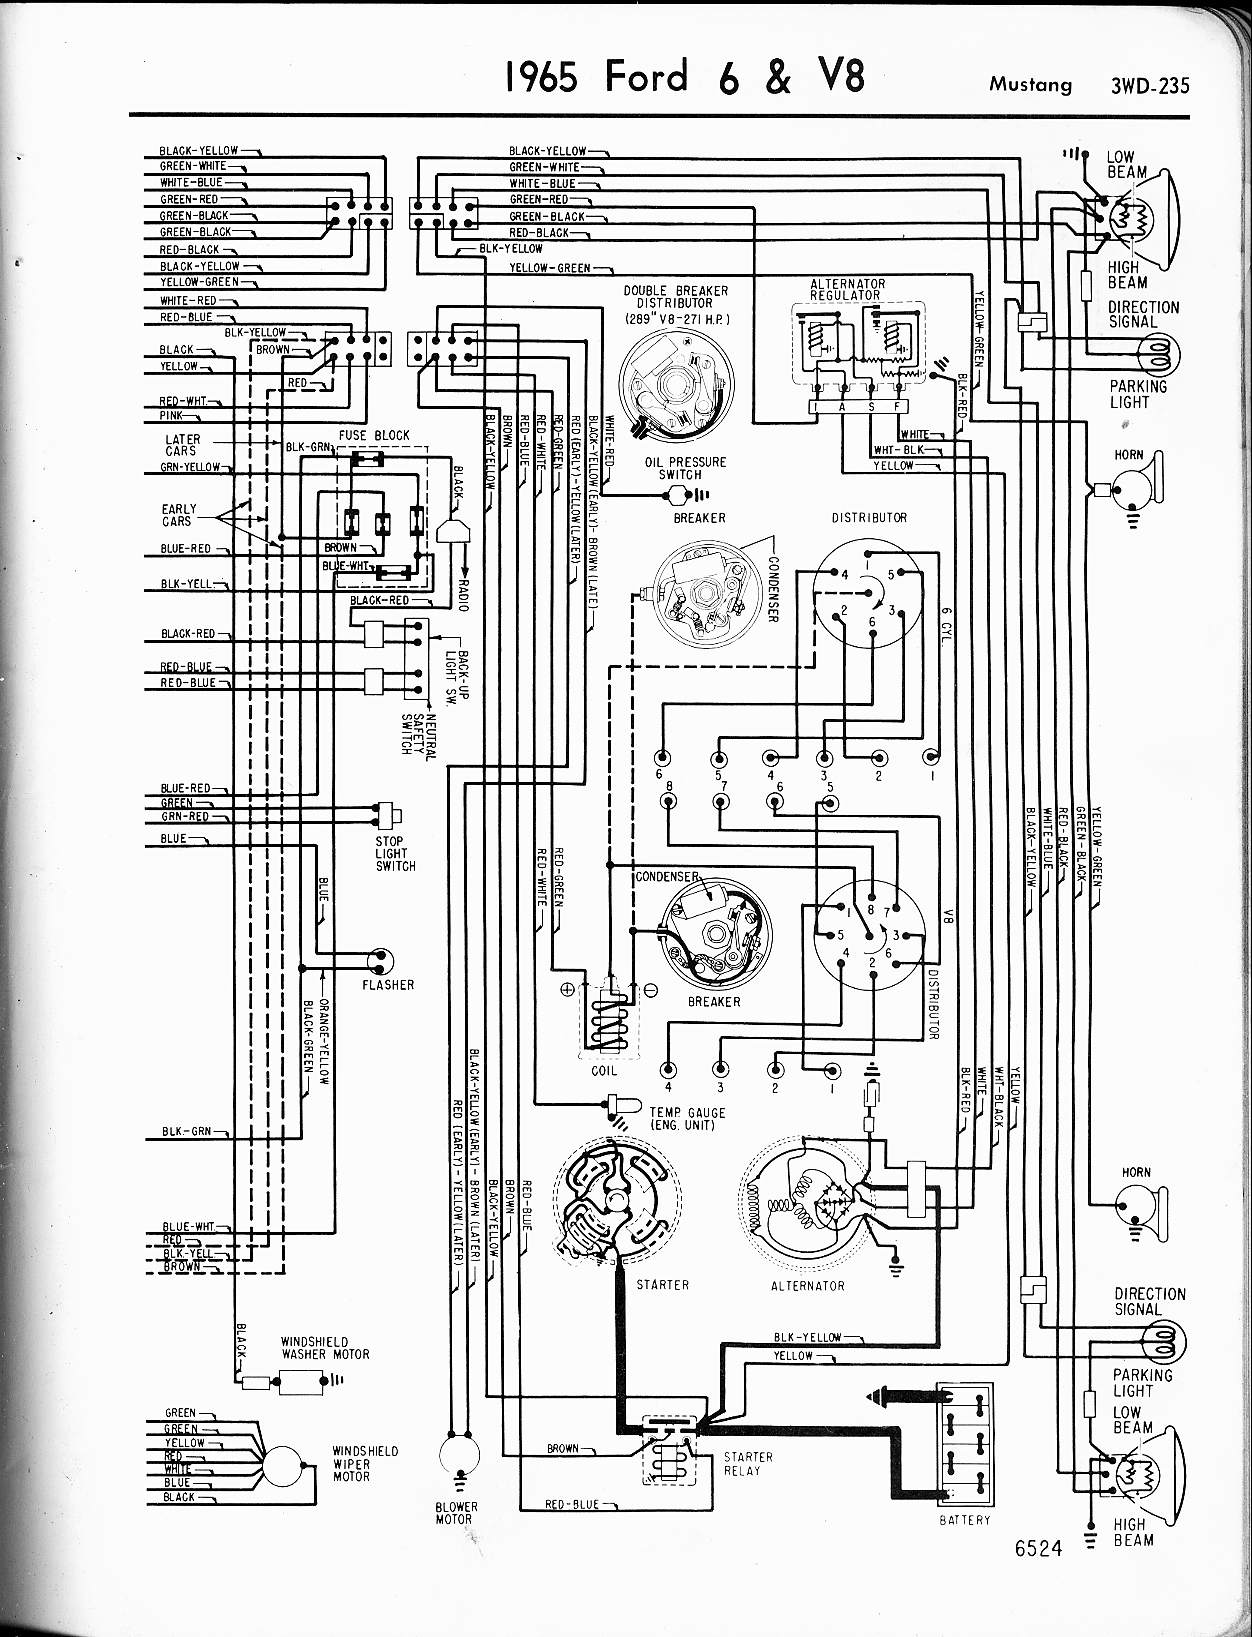 MWire5765 235 100 [ mustang horn wiring diagram ] 63 impala fuse box on 63 mustang wiring harness diagram at suagrazia.org